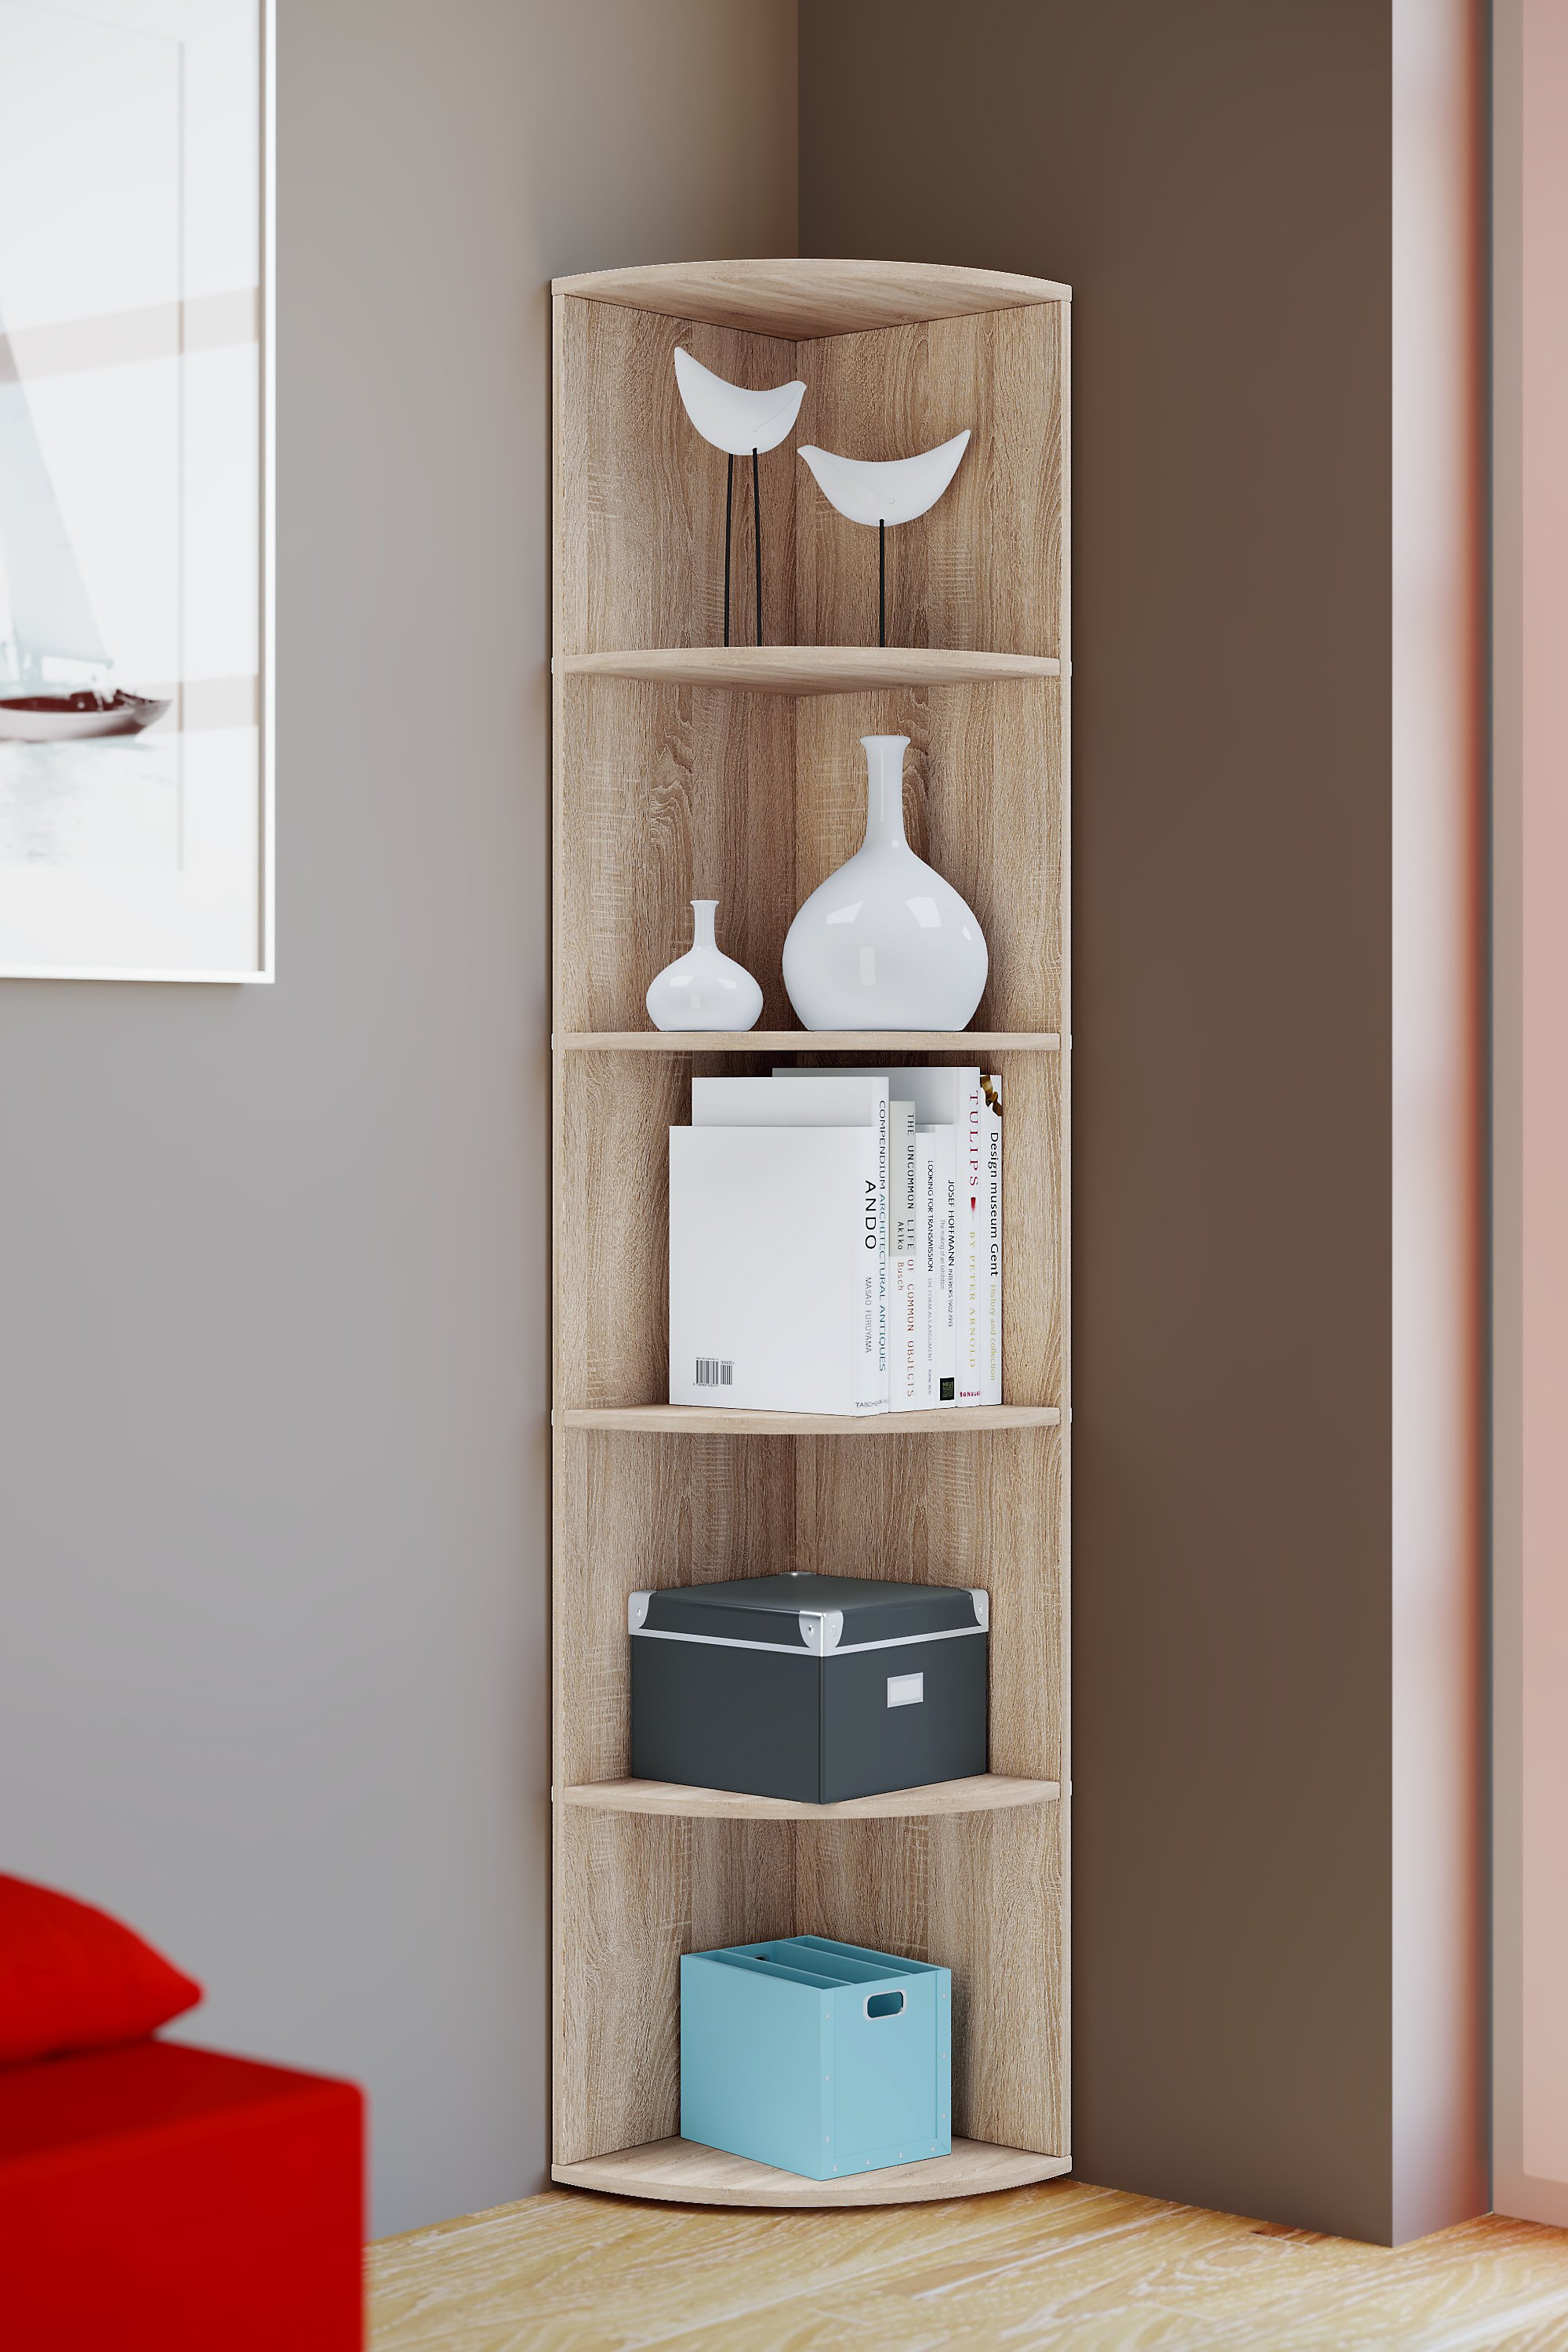 Design Eckregal Latest Corner Shelf For Bathroom In India Bathroom